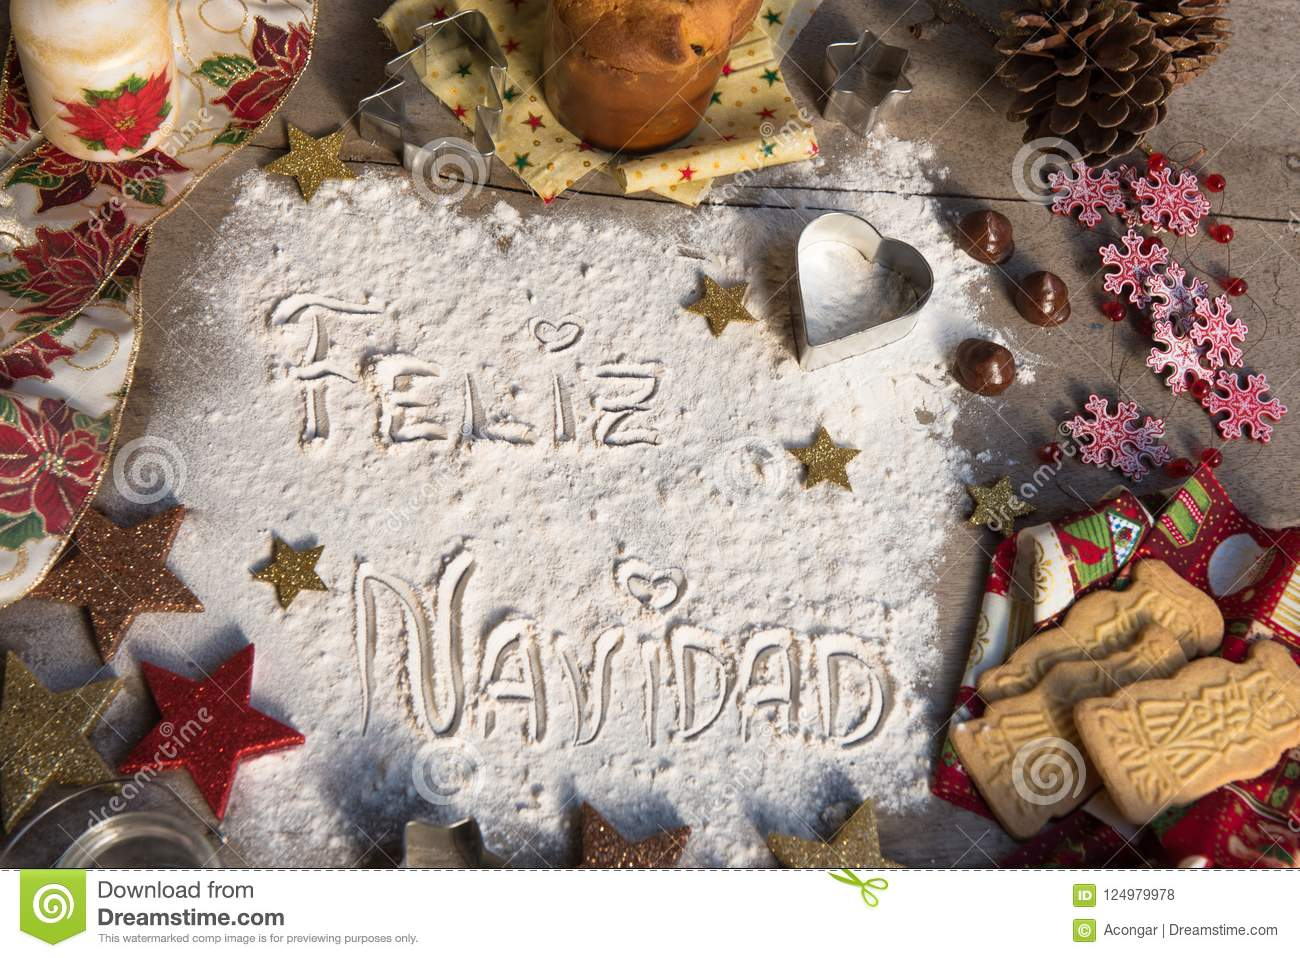 Feliz Navidad, Spanish Text Made With Flour, Surrounded By ...